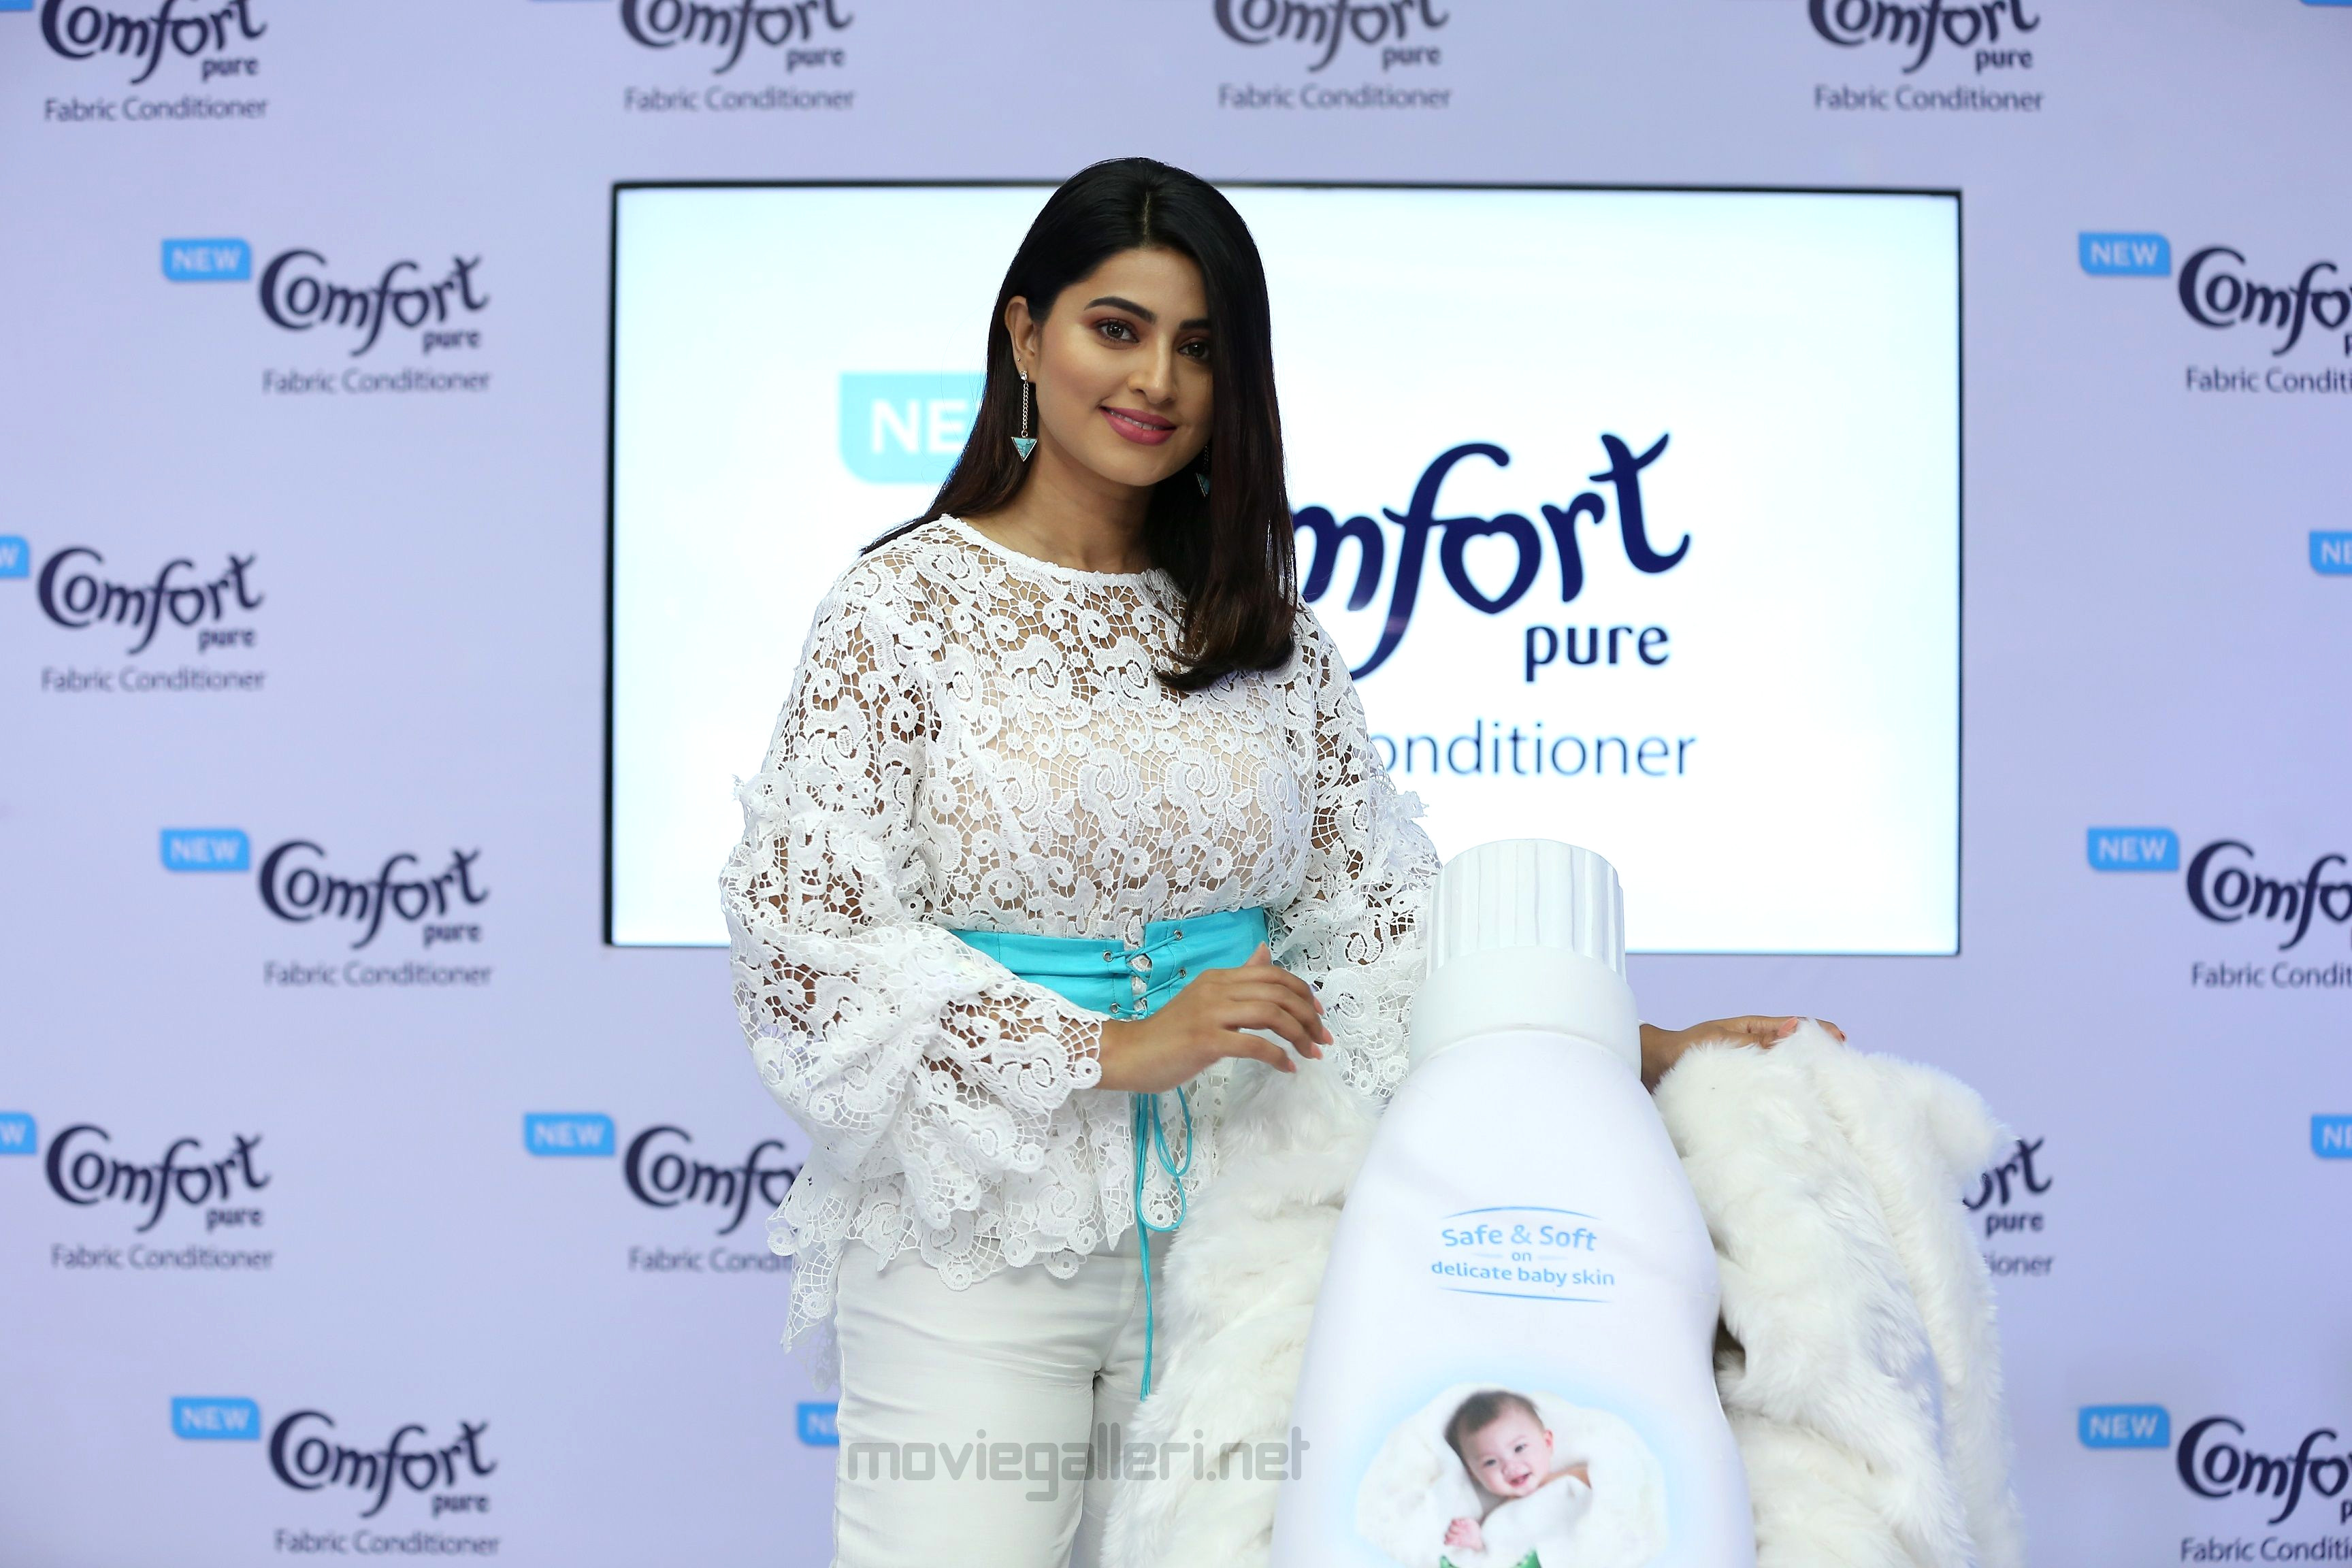 Tamil Actress Sneha Launches Comfort Pure fabric conditioner baby clothes